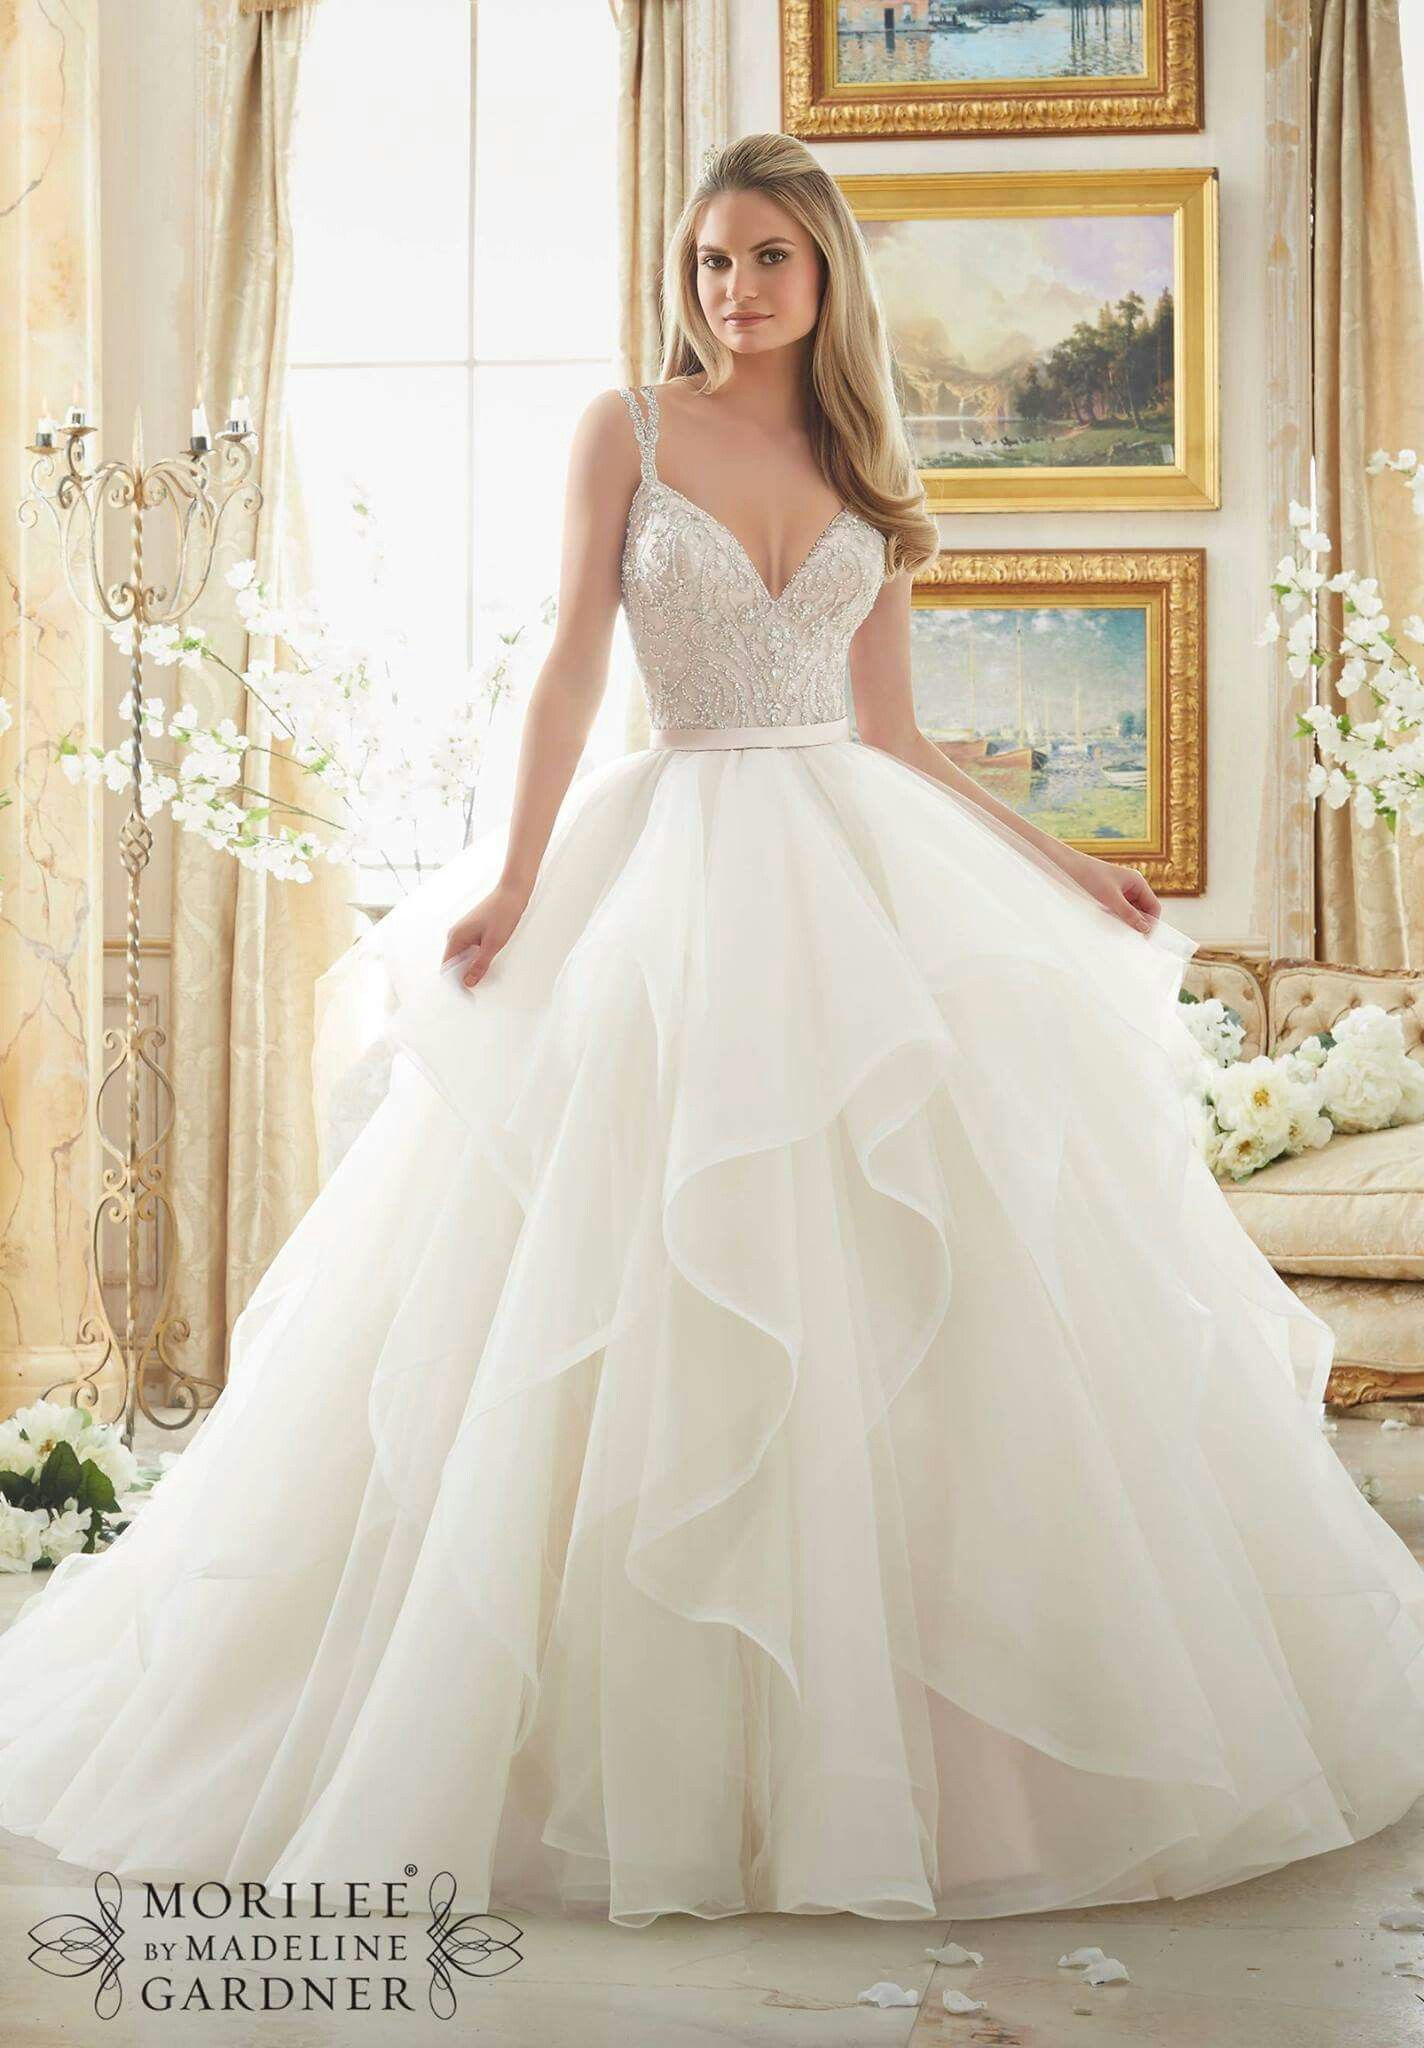 Lace ball gown wedding dresses  Pin by Trina Whitesides on EVERYTHING BRIDAL  Pinterest  Wedding